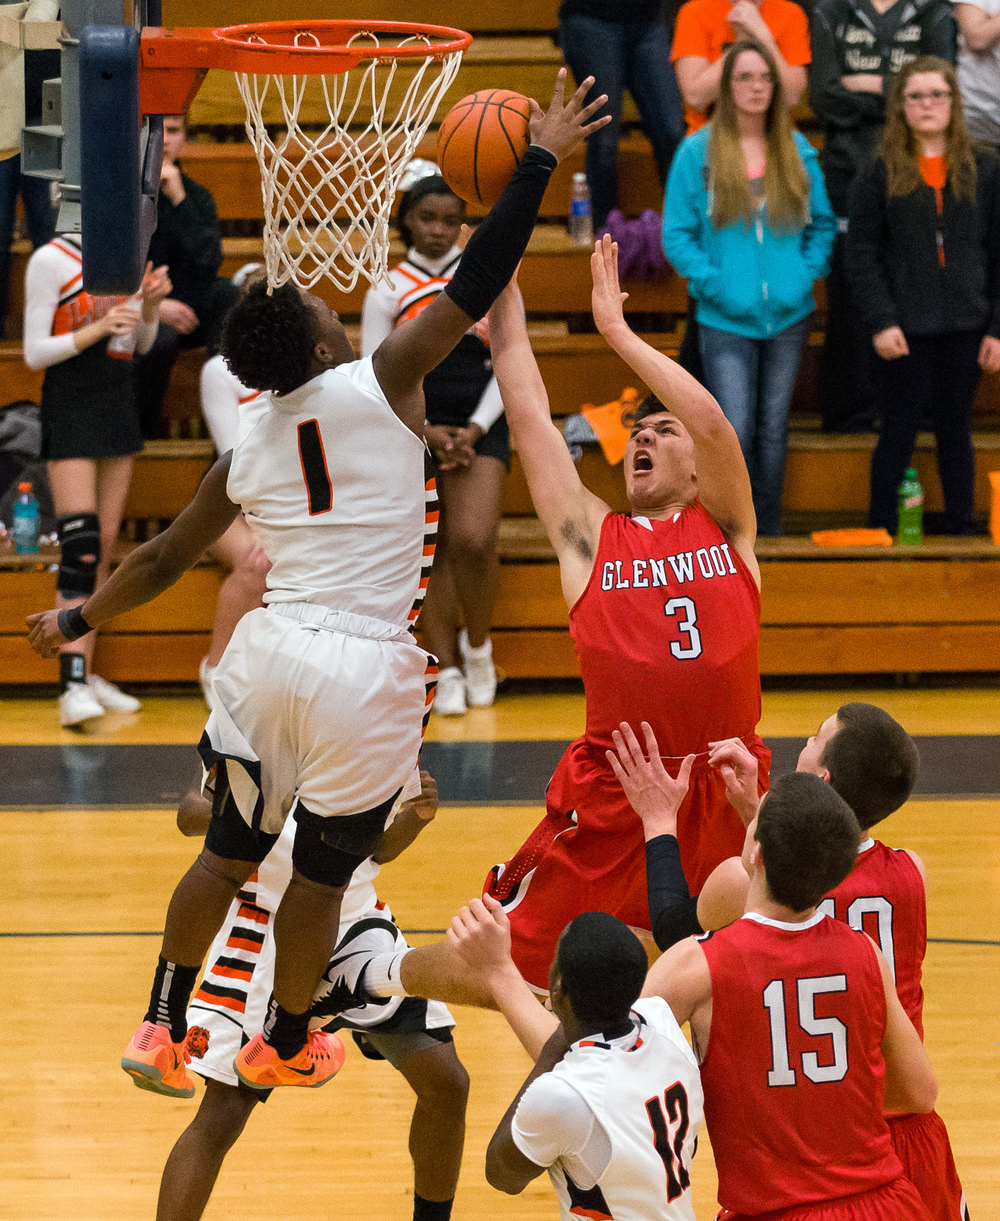 Lanphier's Yaakema Rose (1) blocks a shot from Glenwood's Drew Parriott (3) in the first half during the Class 3A Champaign Centennial Sectional semifinals, Tuesday, March 10, 2015, in Champaign, Ill. Justin L. Fowler/The State Journal-Register